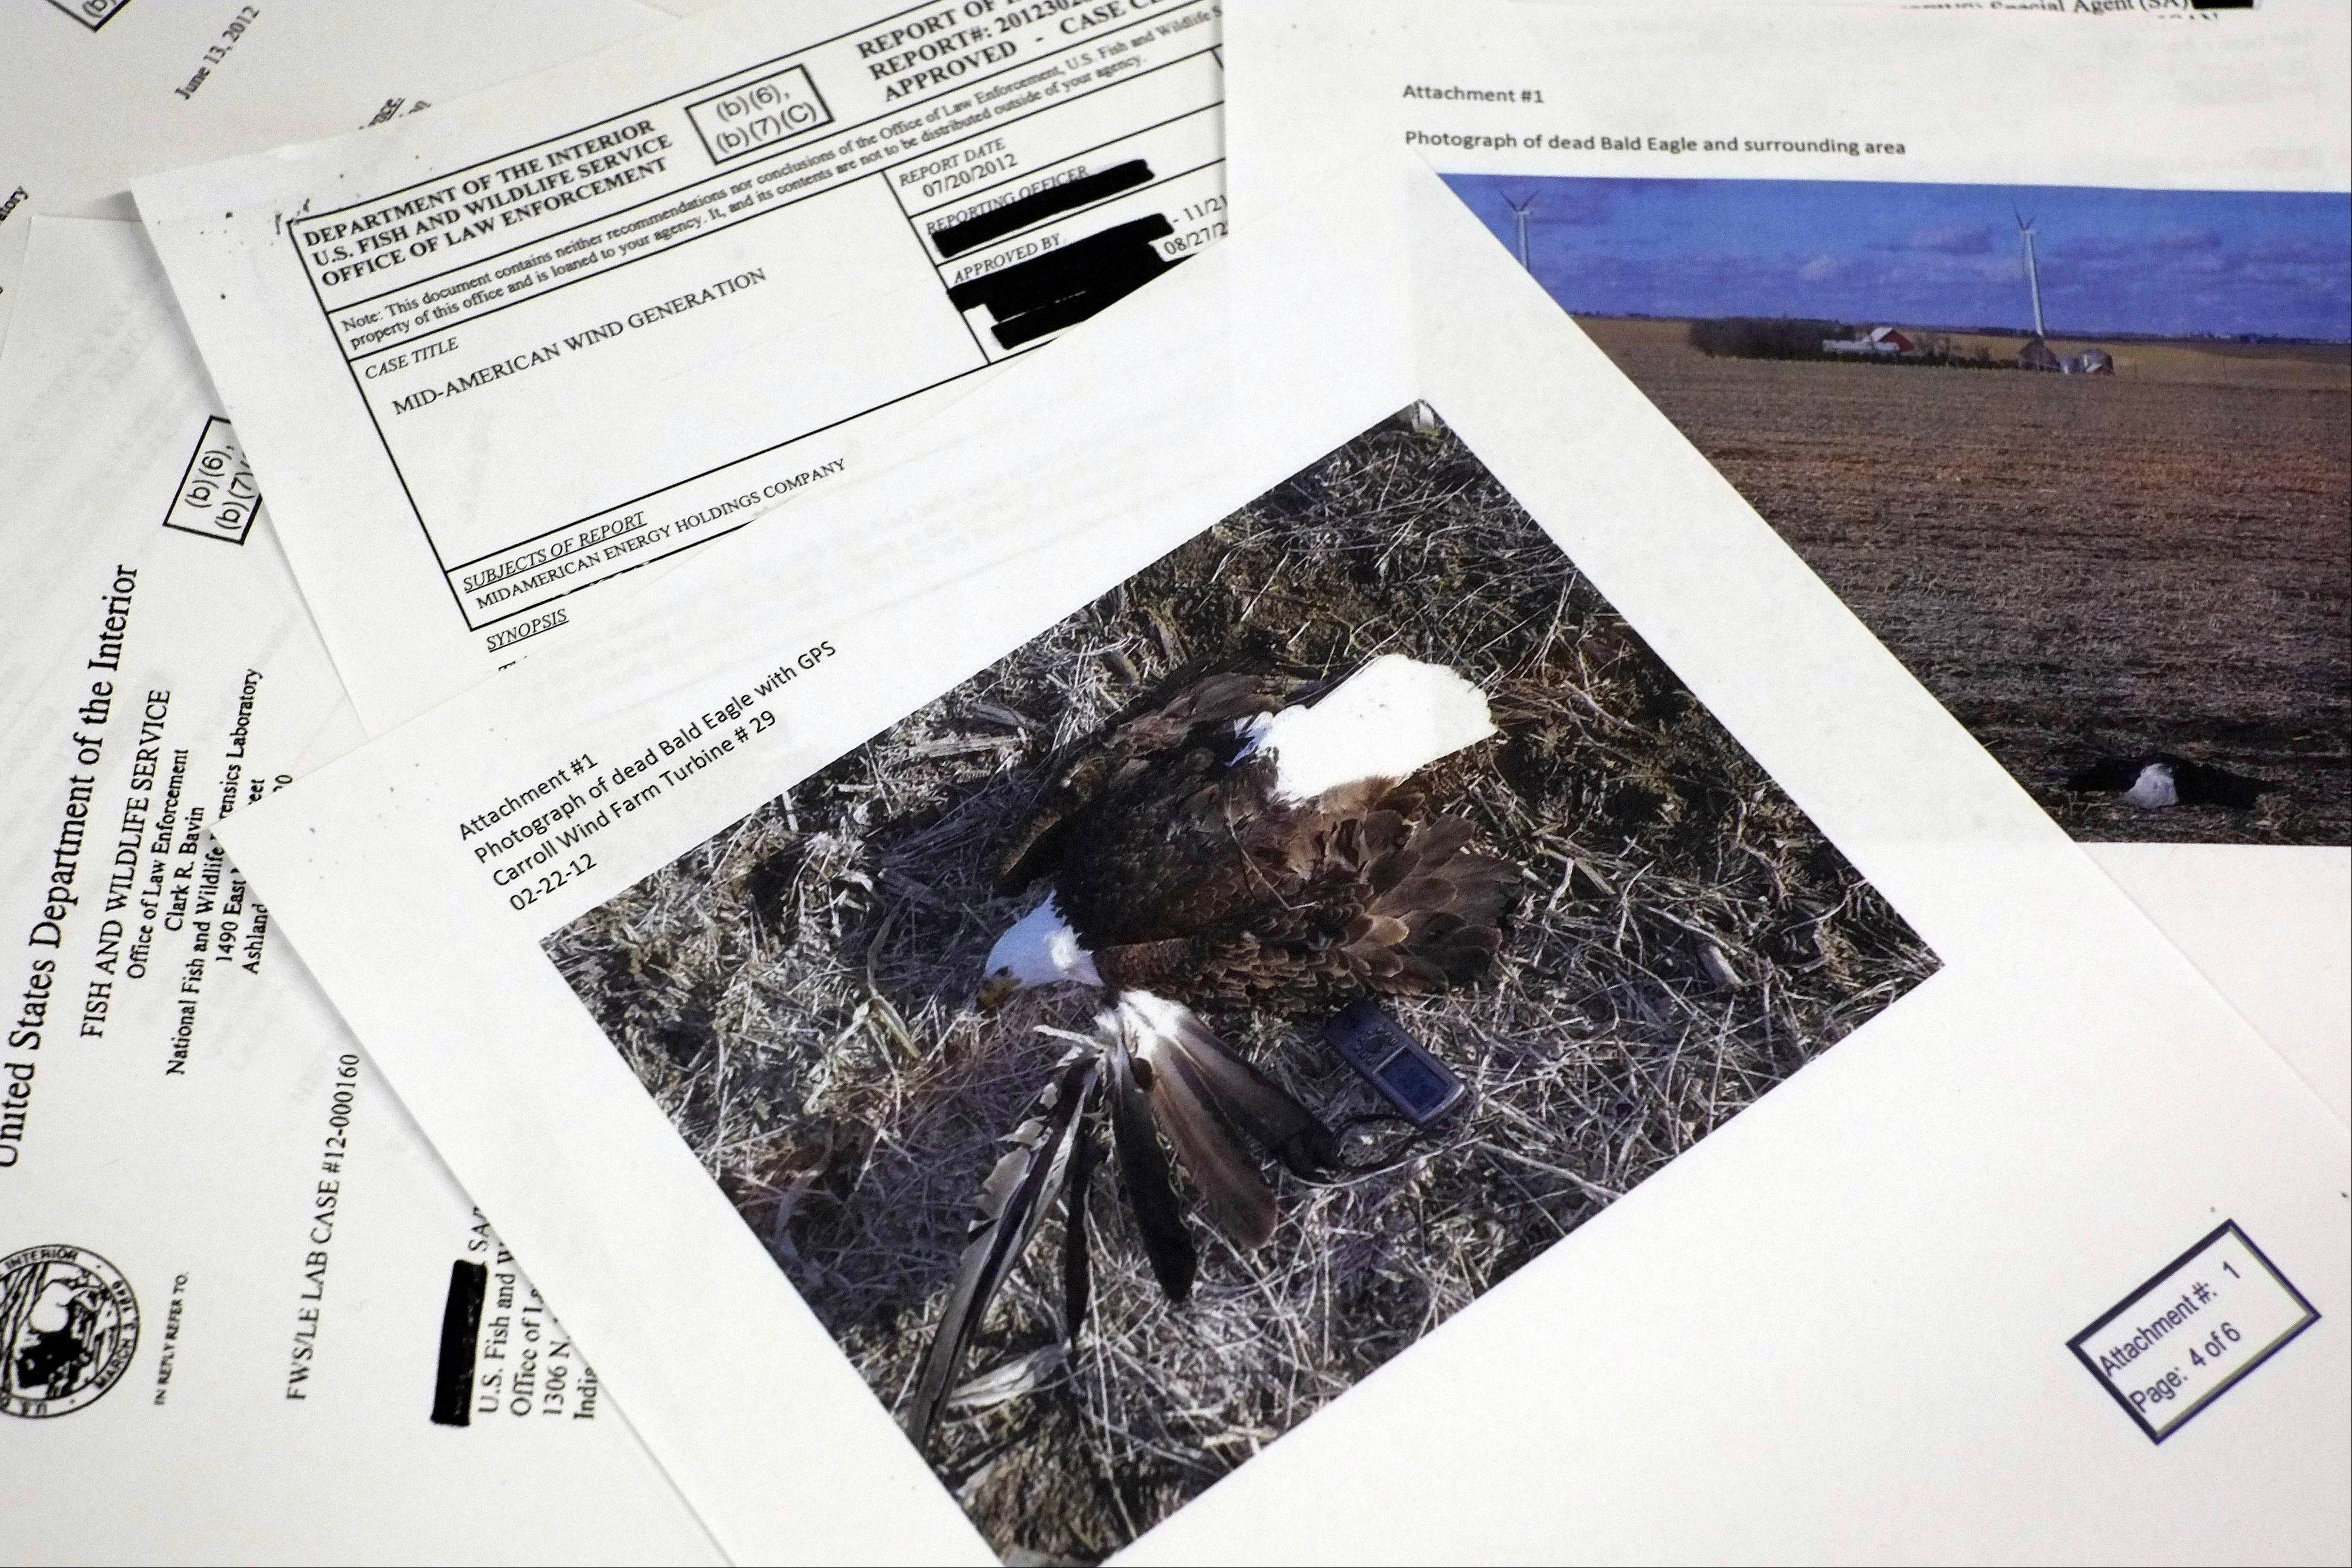 Pages from a U.S. Fish and Wildlife Office of Law Enforcement document obtained with a Freedom of Information Act request by the Associated Press in the investigation of a dead bald eagle the reports says was found at the Carroll Wind Farm in Carroll, Ia.